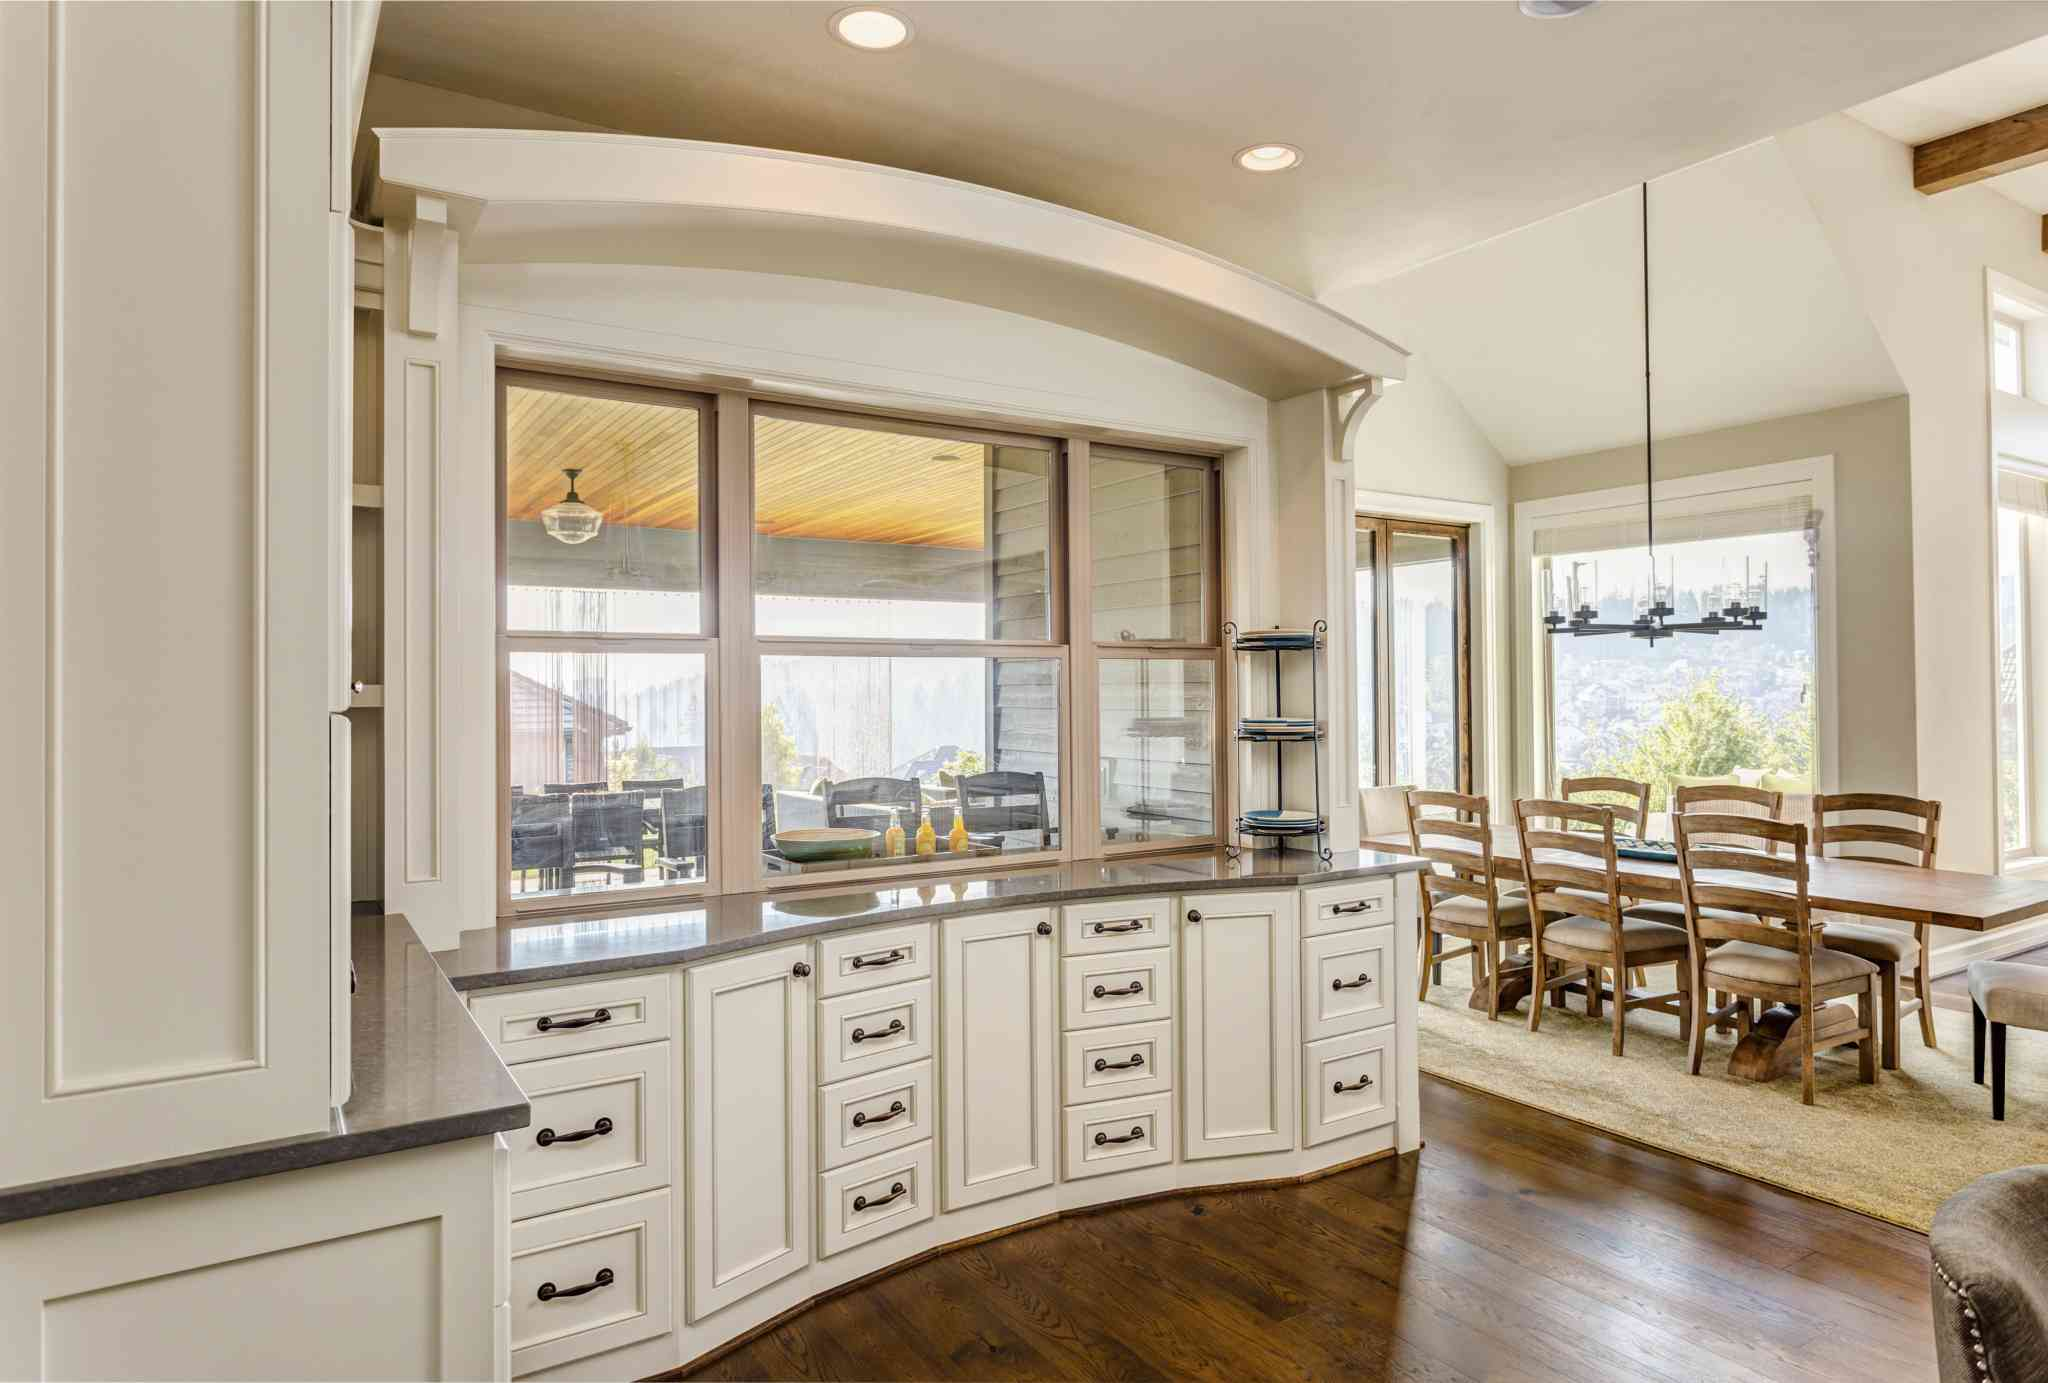 replacing your kitchen cabinets